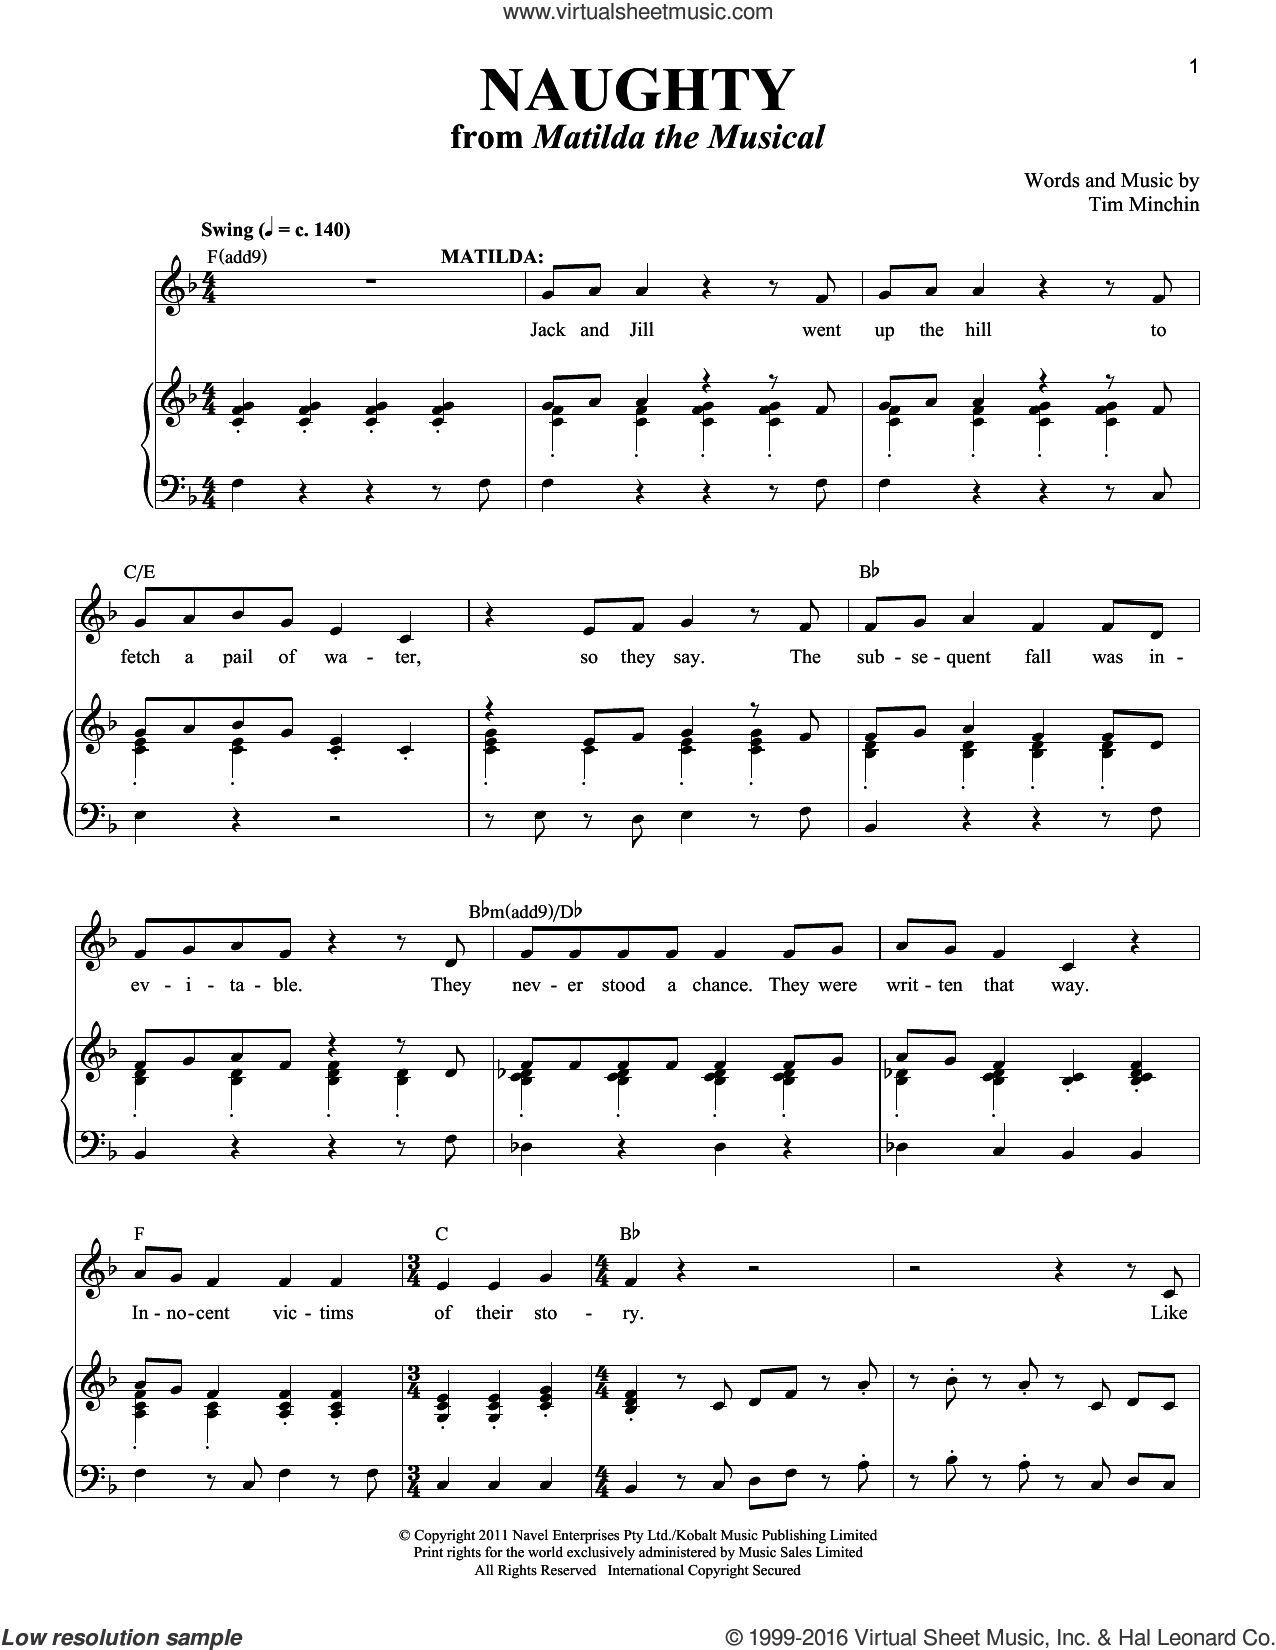 Naughty sheet music for voice and piano by Tim Minchin